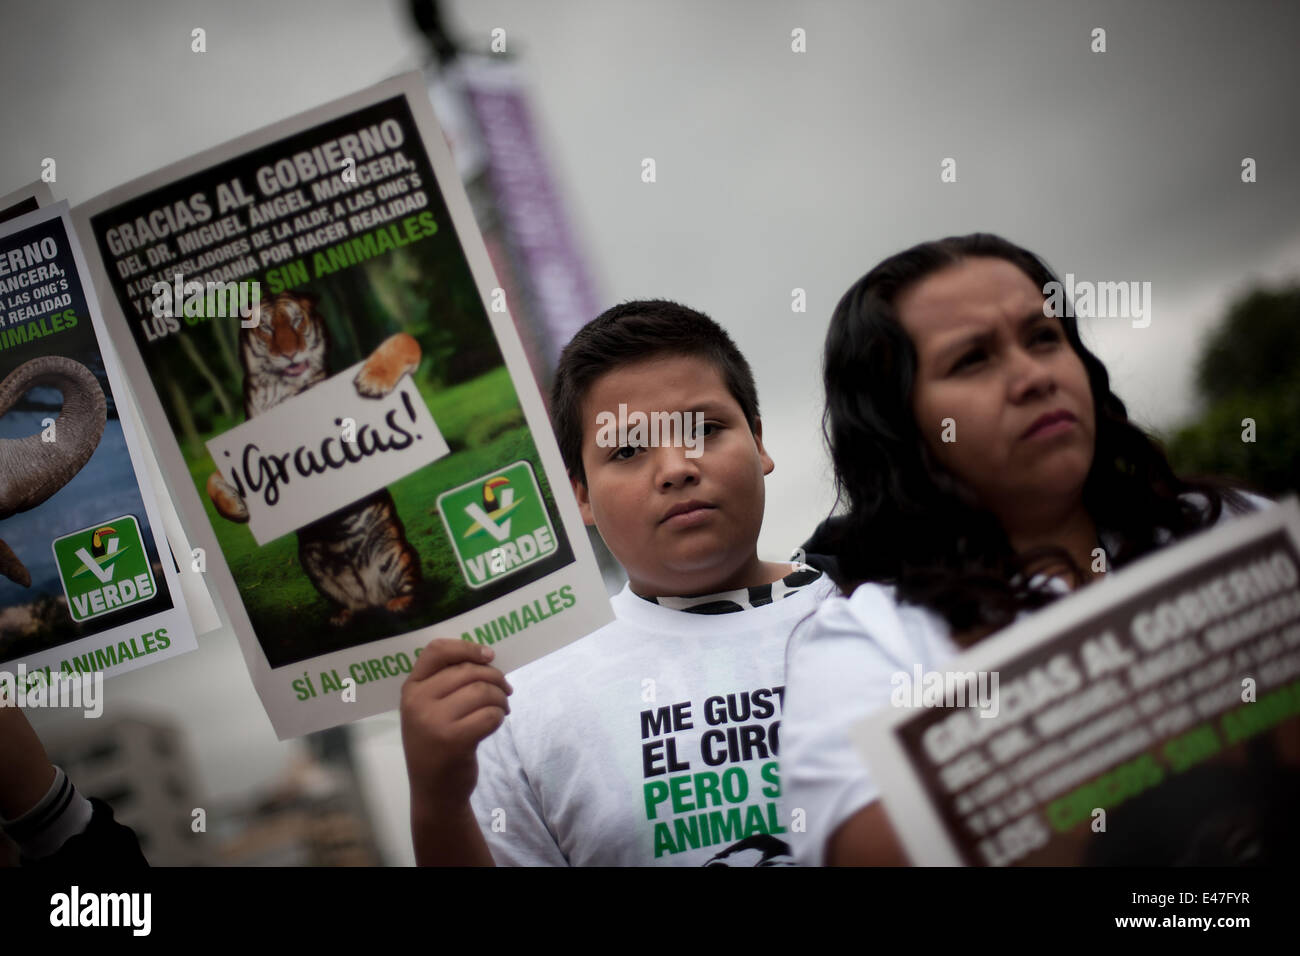 Mexico City, Mexico. 4th July, 2014. A boy takes part in a protest against the mistreatment of animals in circuses - Stock Image